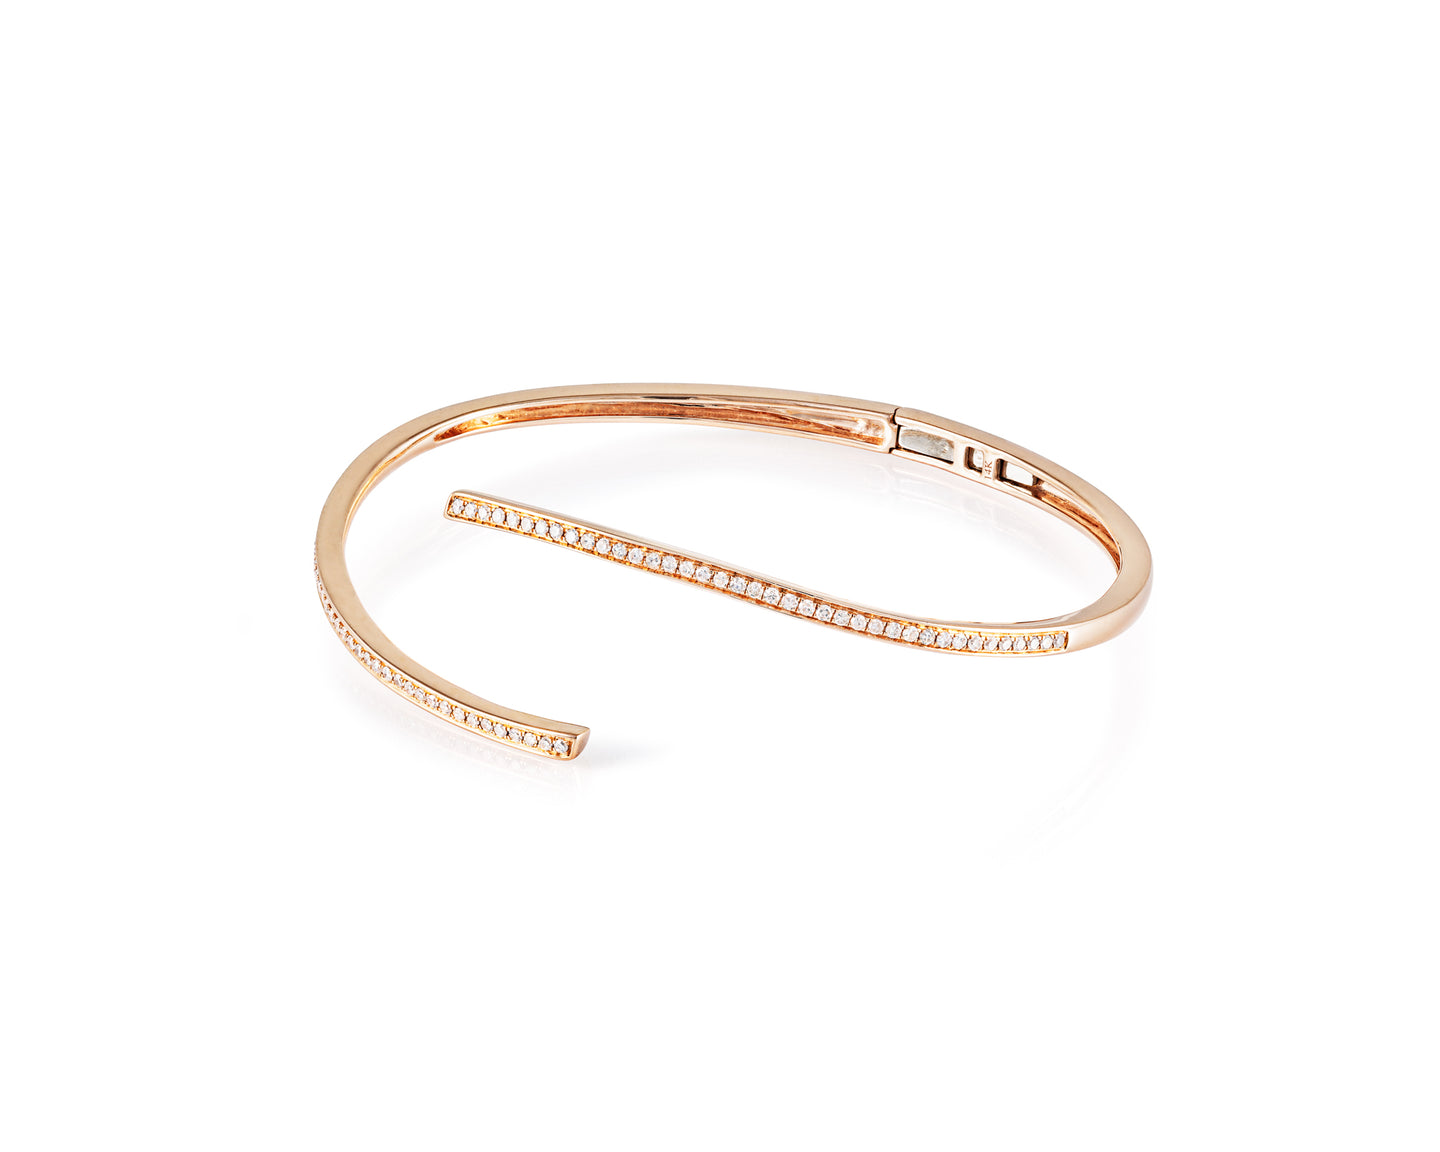 .55ct Diamond, 14kt Rose Gold Open Bangle